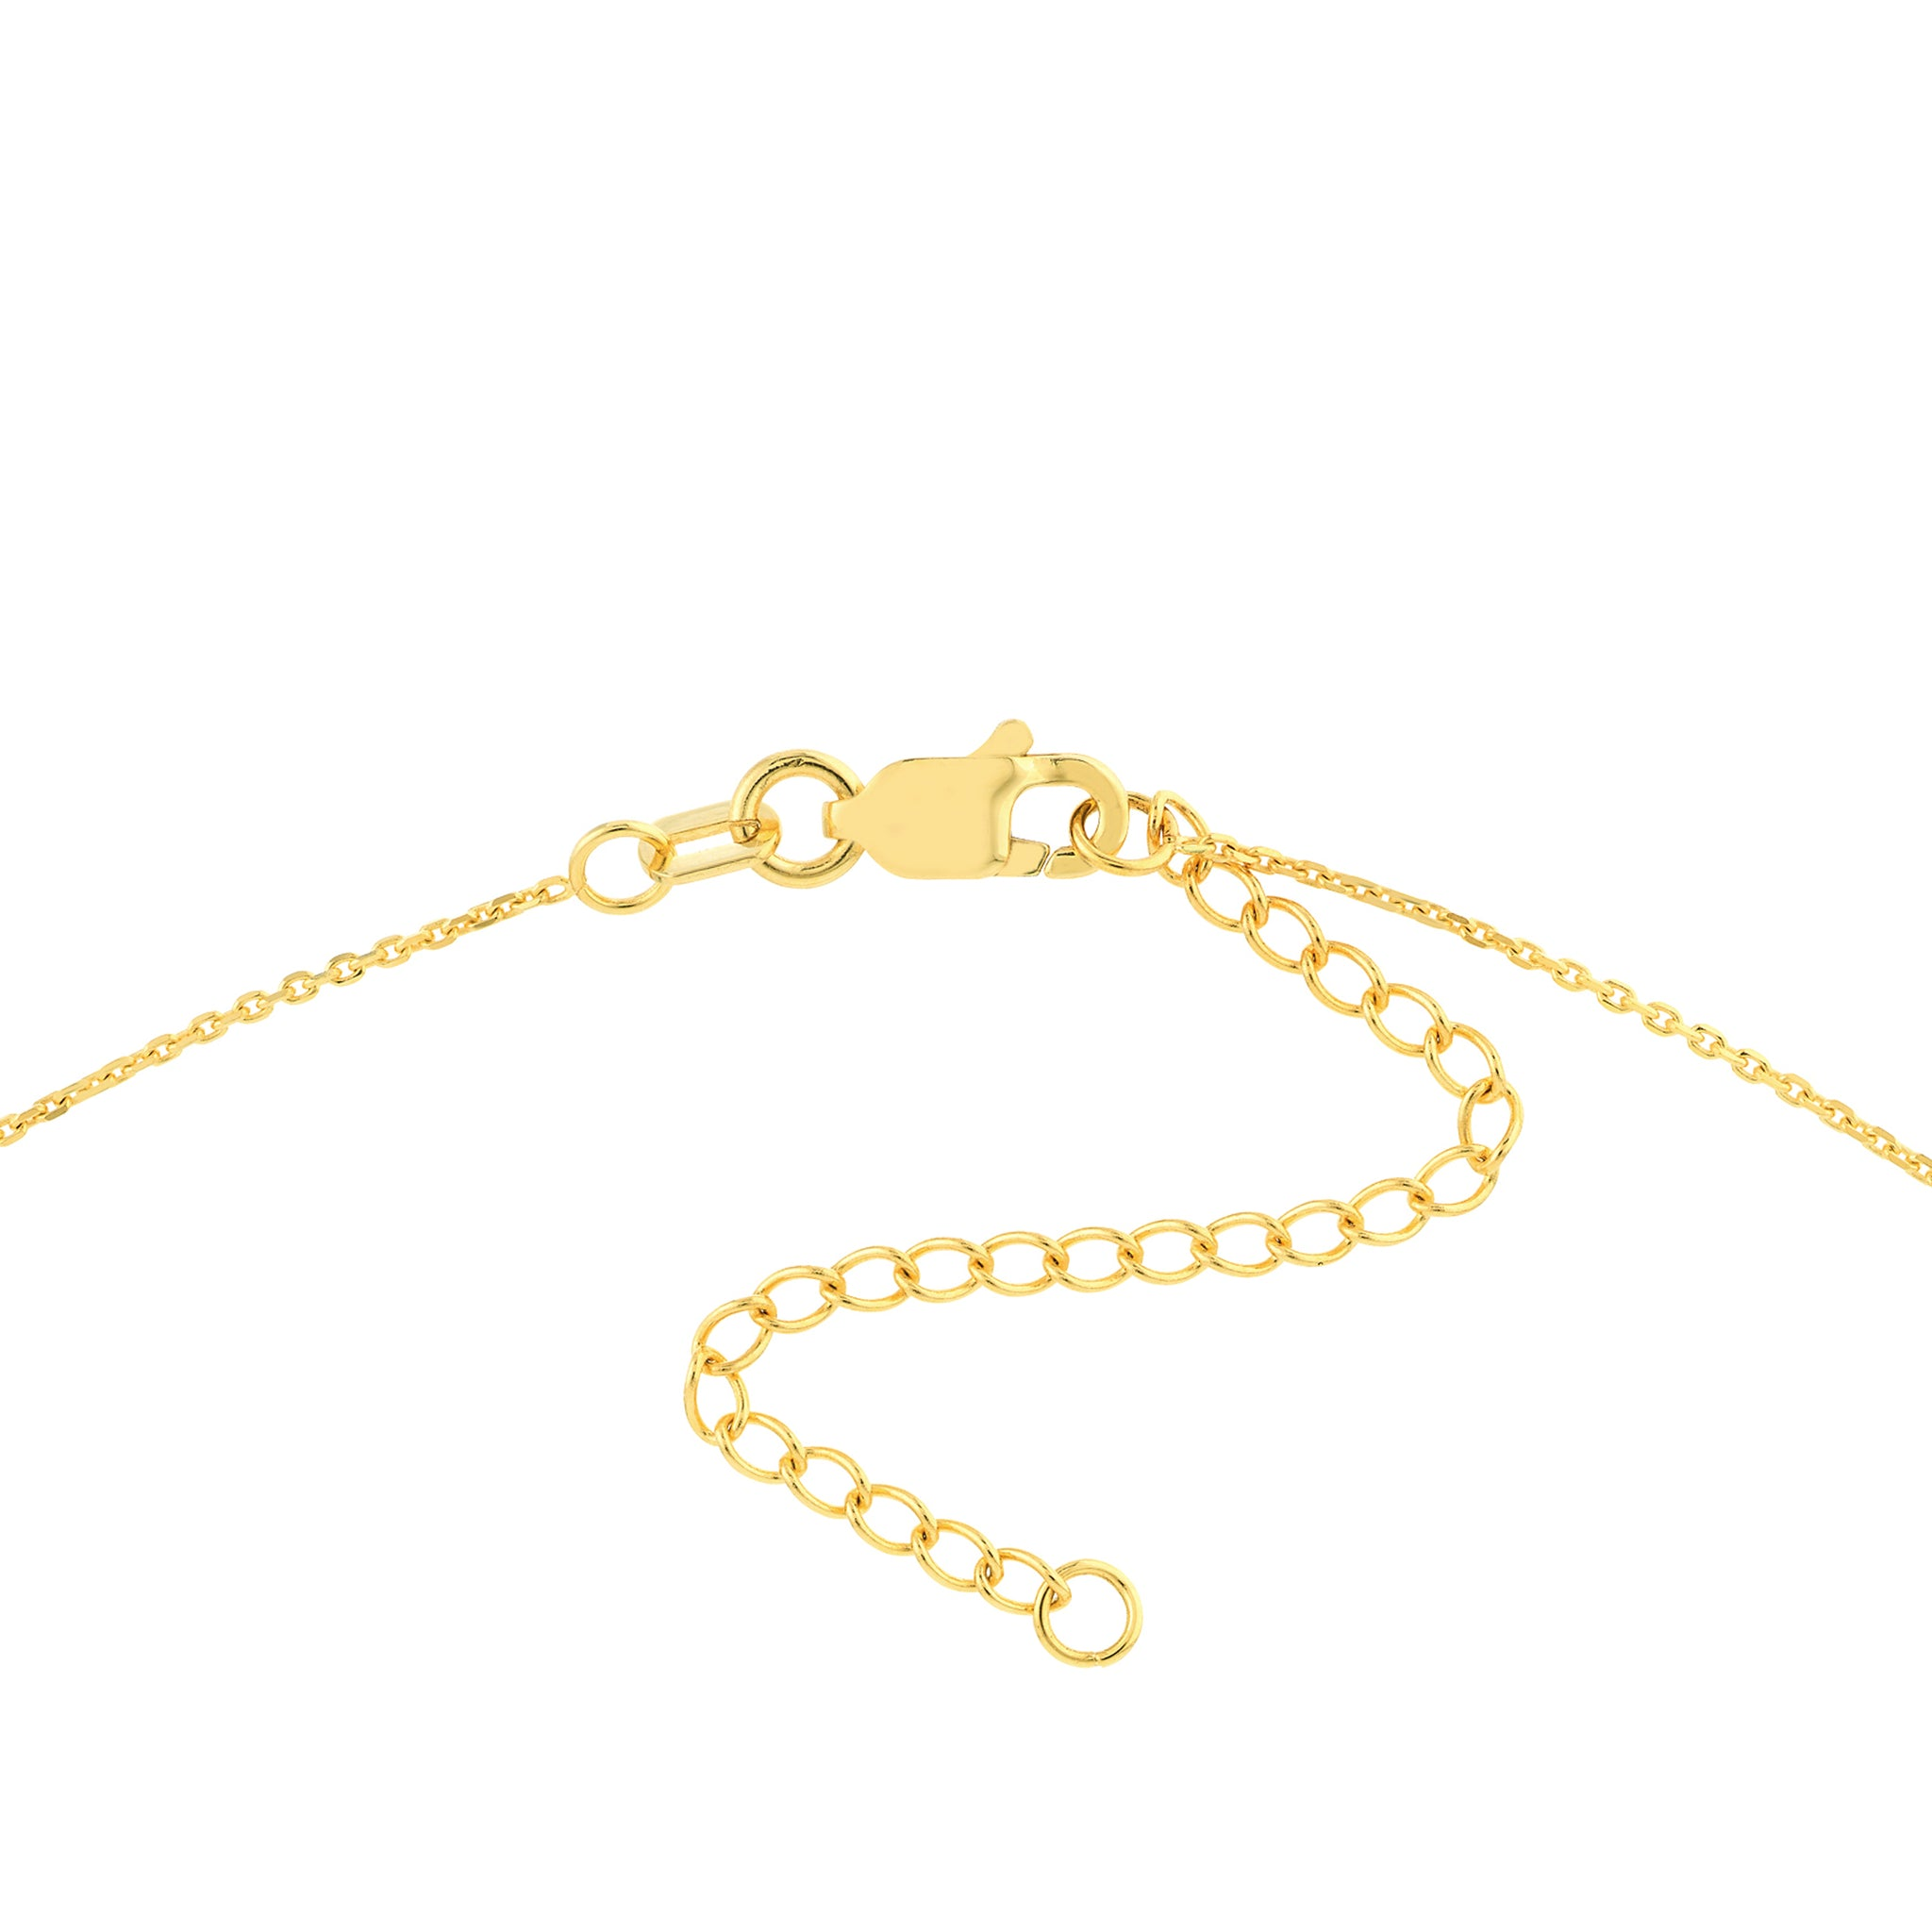 Hemsleys Collection 14K Yellow Gold & Diamonds Stars-By-The-Yard Necklace